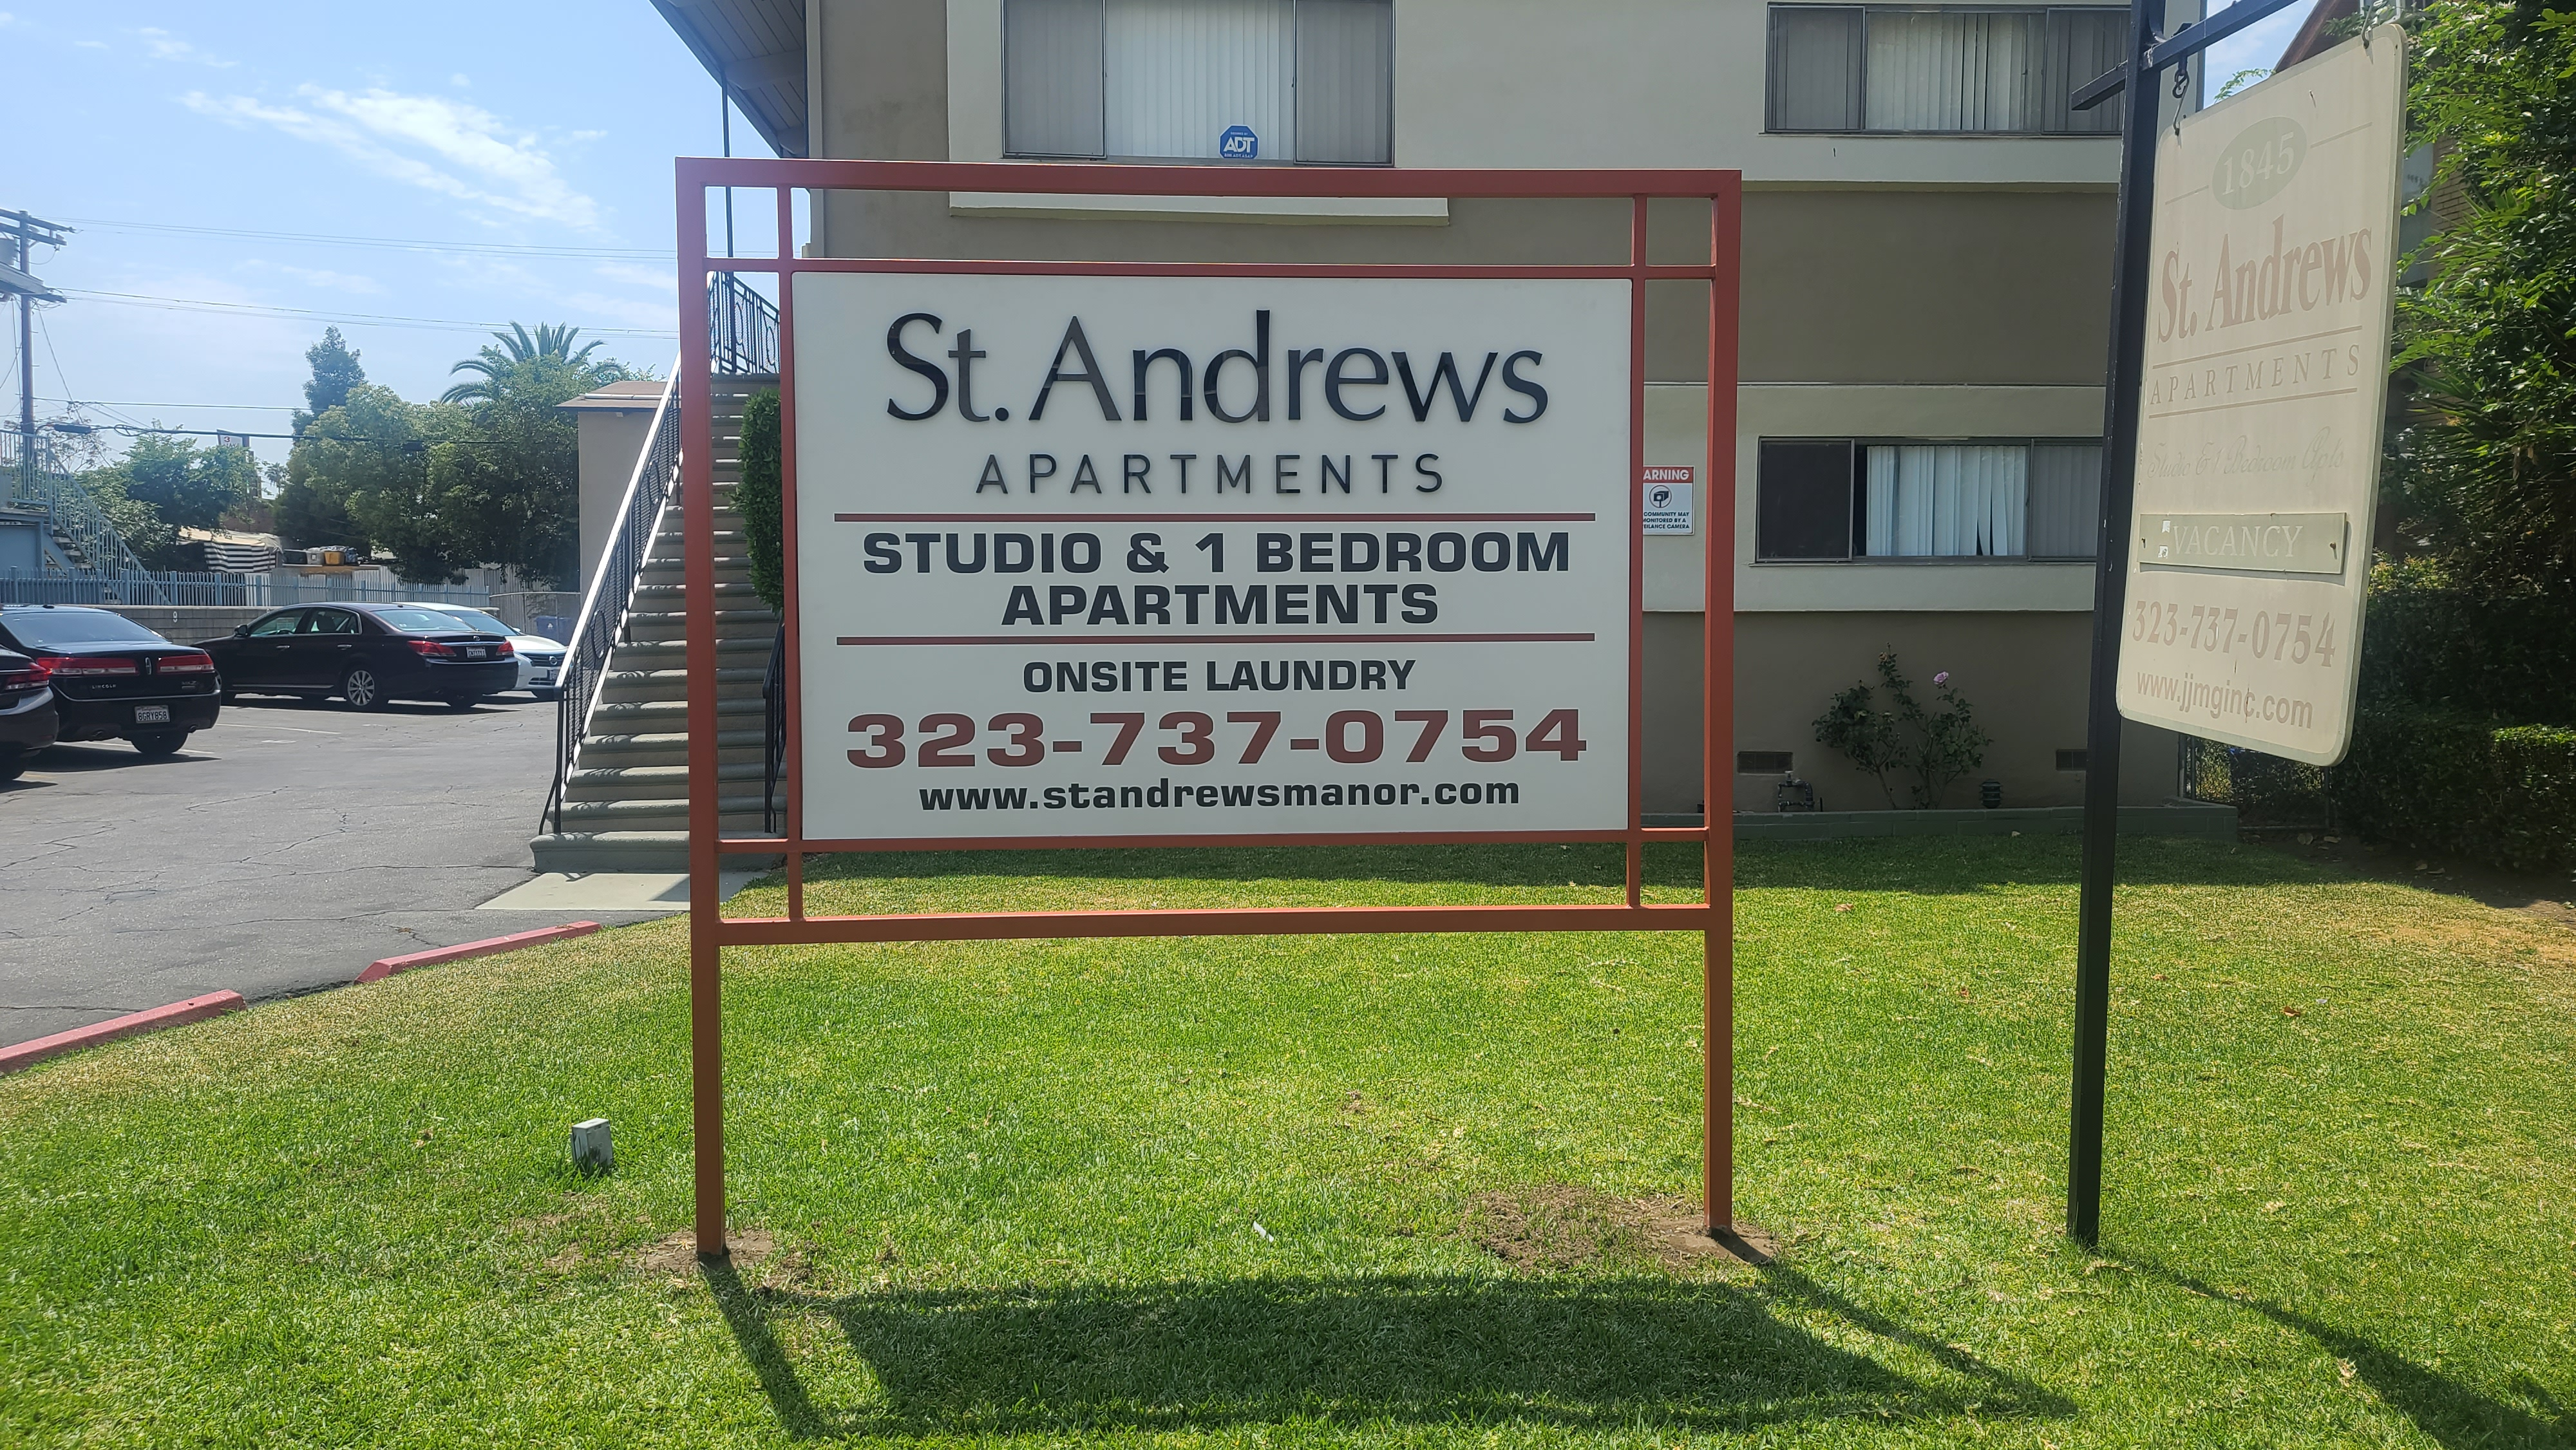 This is the monument sign we made for Jones and Jones' St. Andrews property, part of our broader sign package for the company.